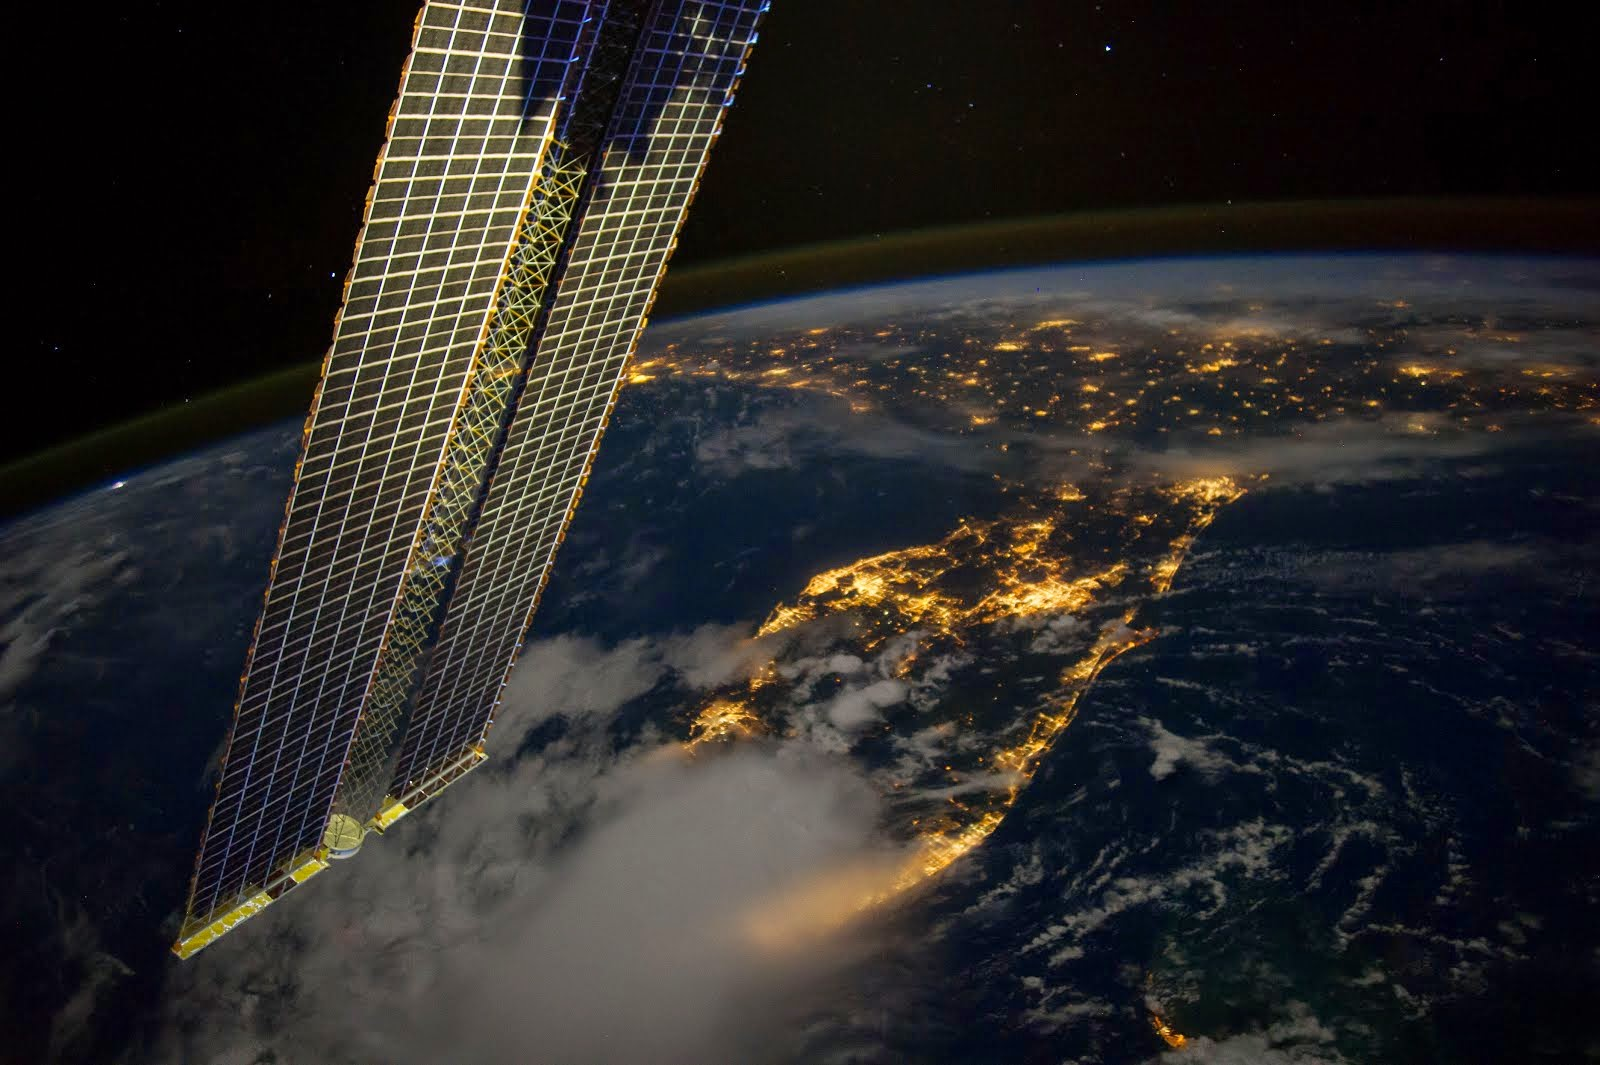 ISS VIEW OF U.S. SOUTHEAST IN THE MORNING